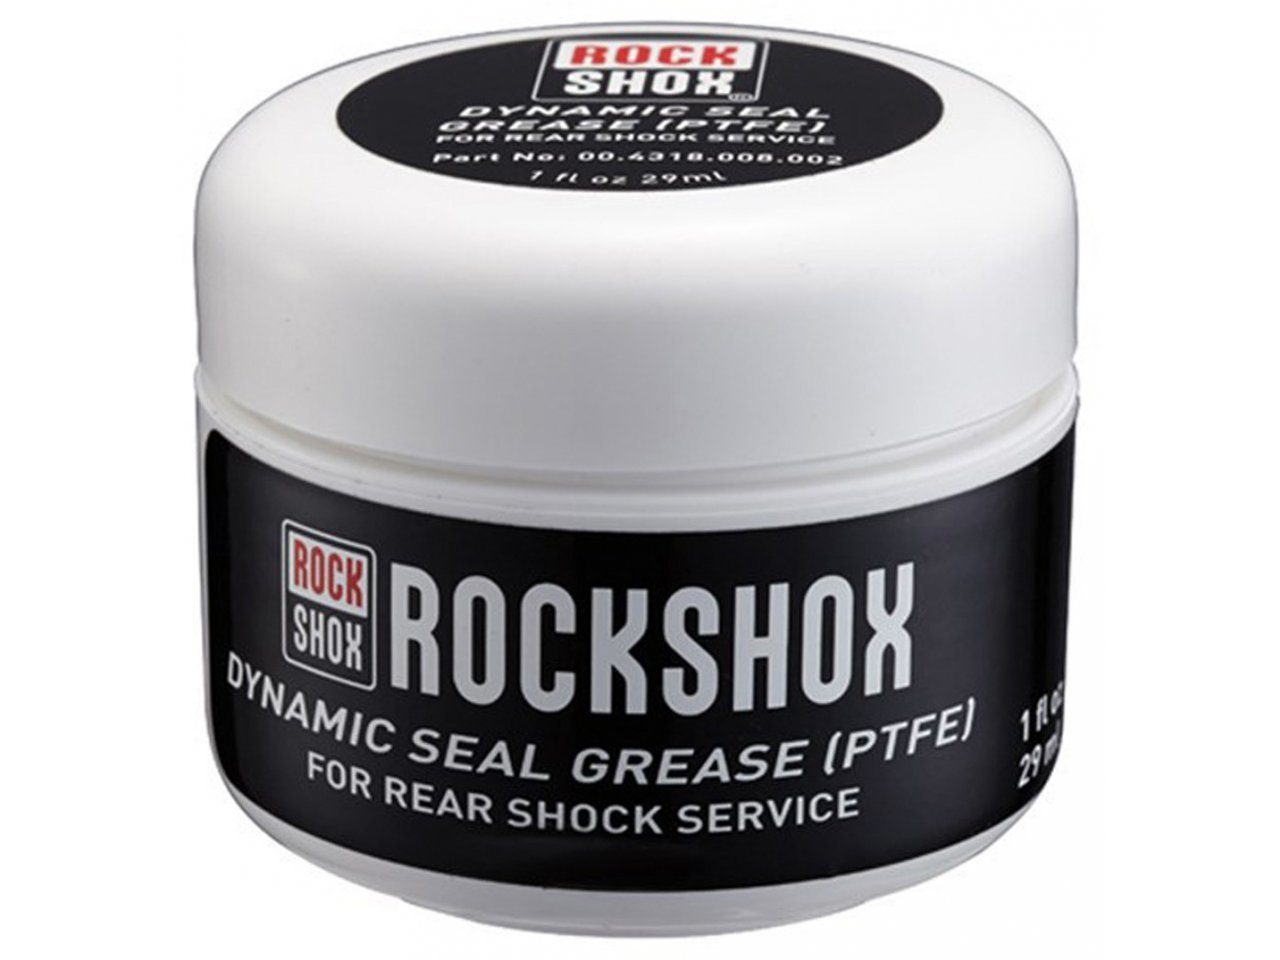 MAST SRAM DYNAMIC SEAL GREASE 500ML